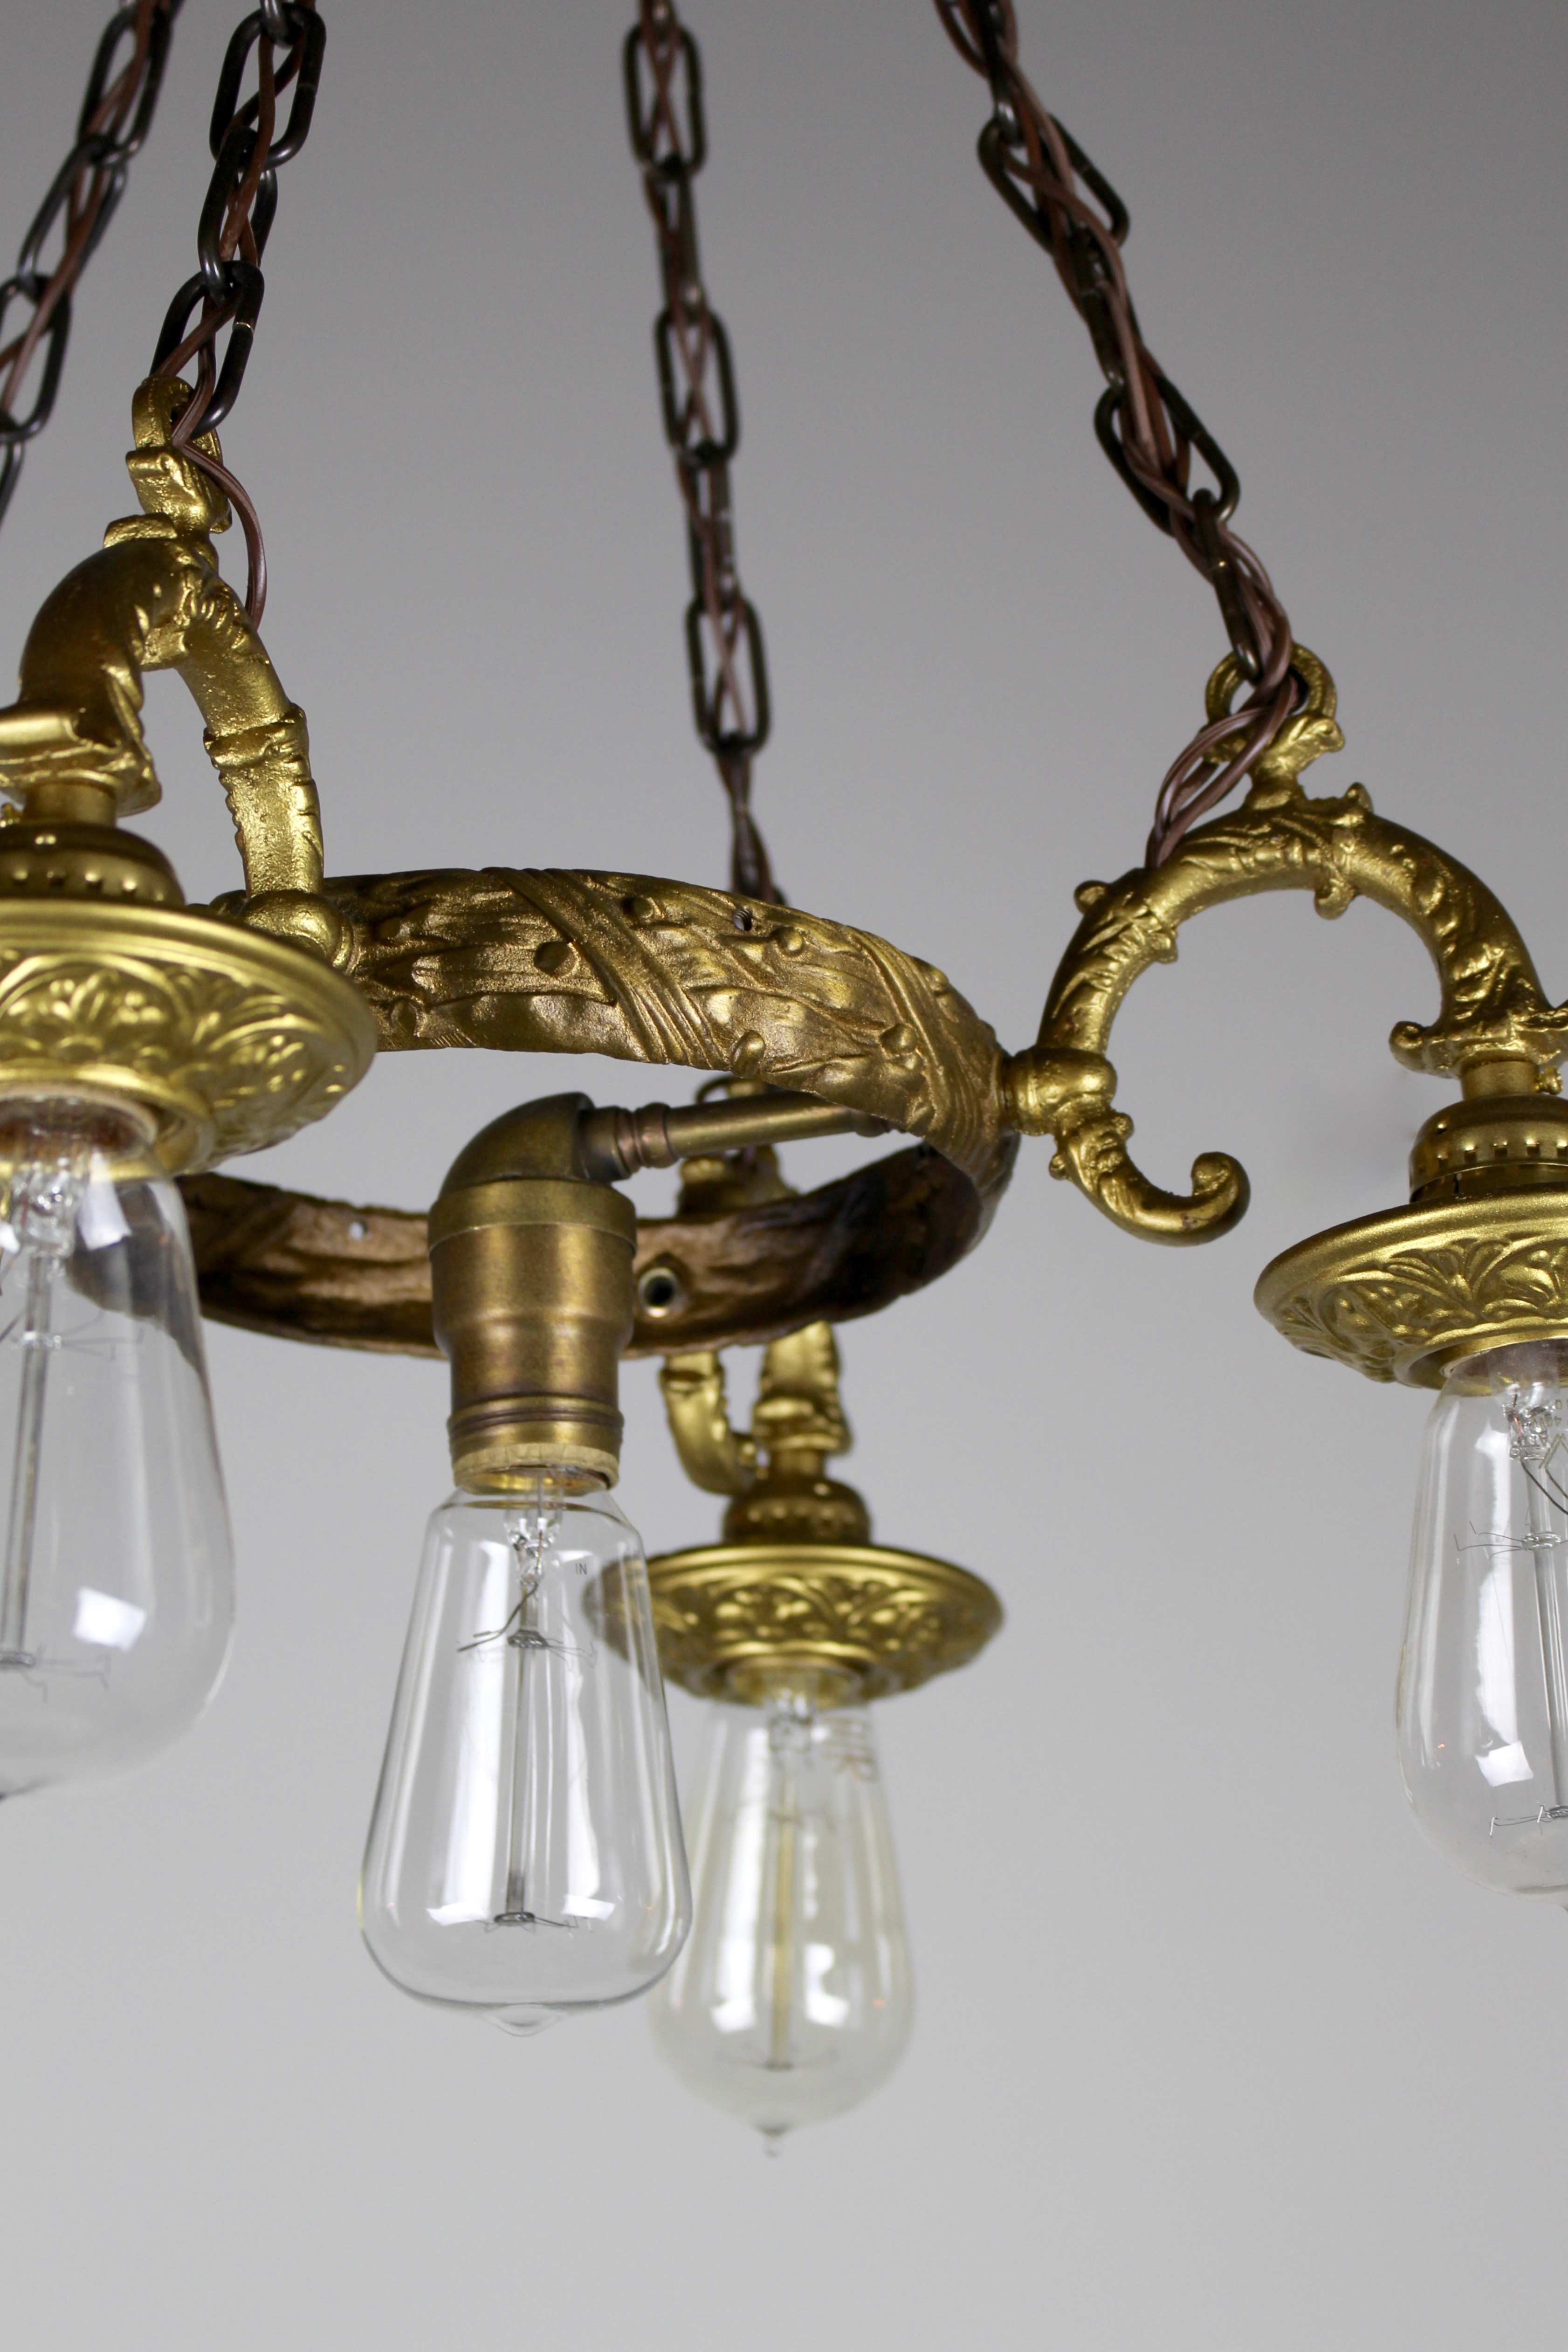 Rococo Revival Brass Ring Fixture Renew Gallery